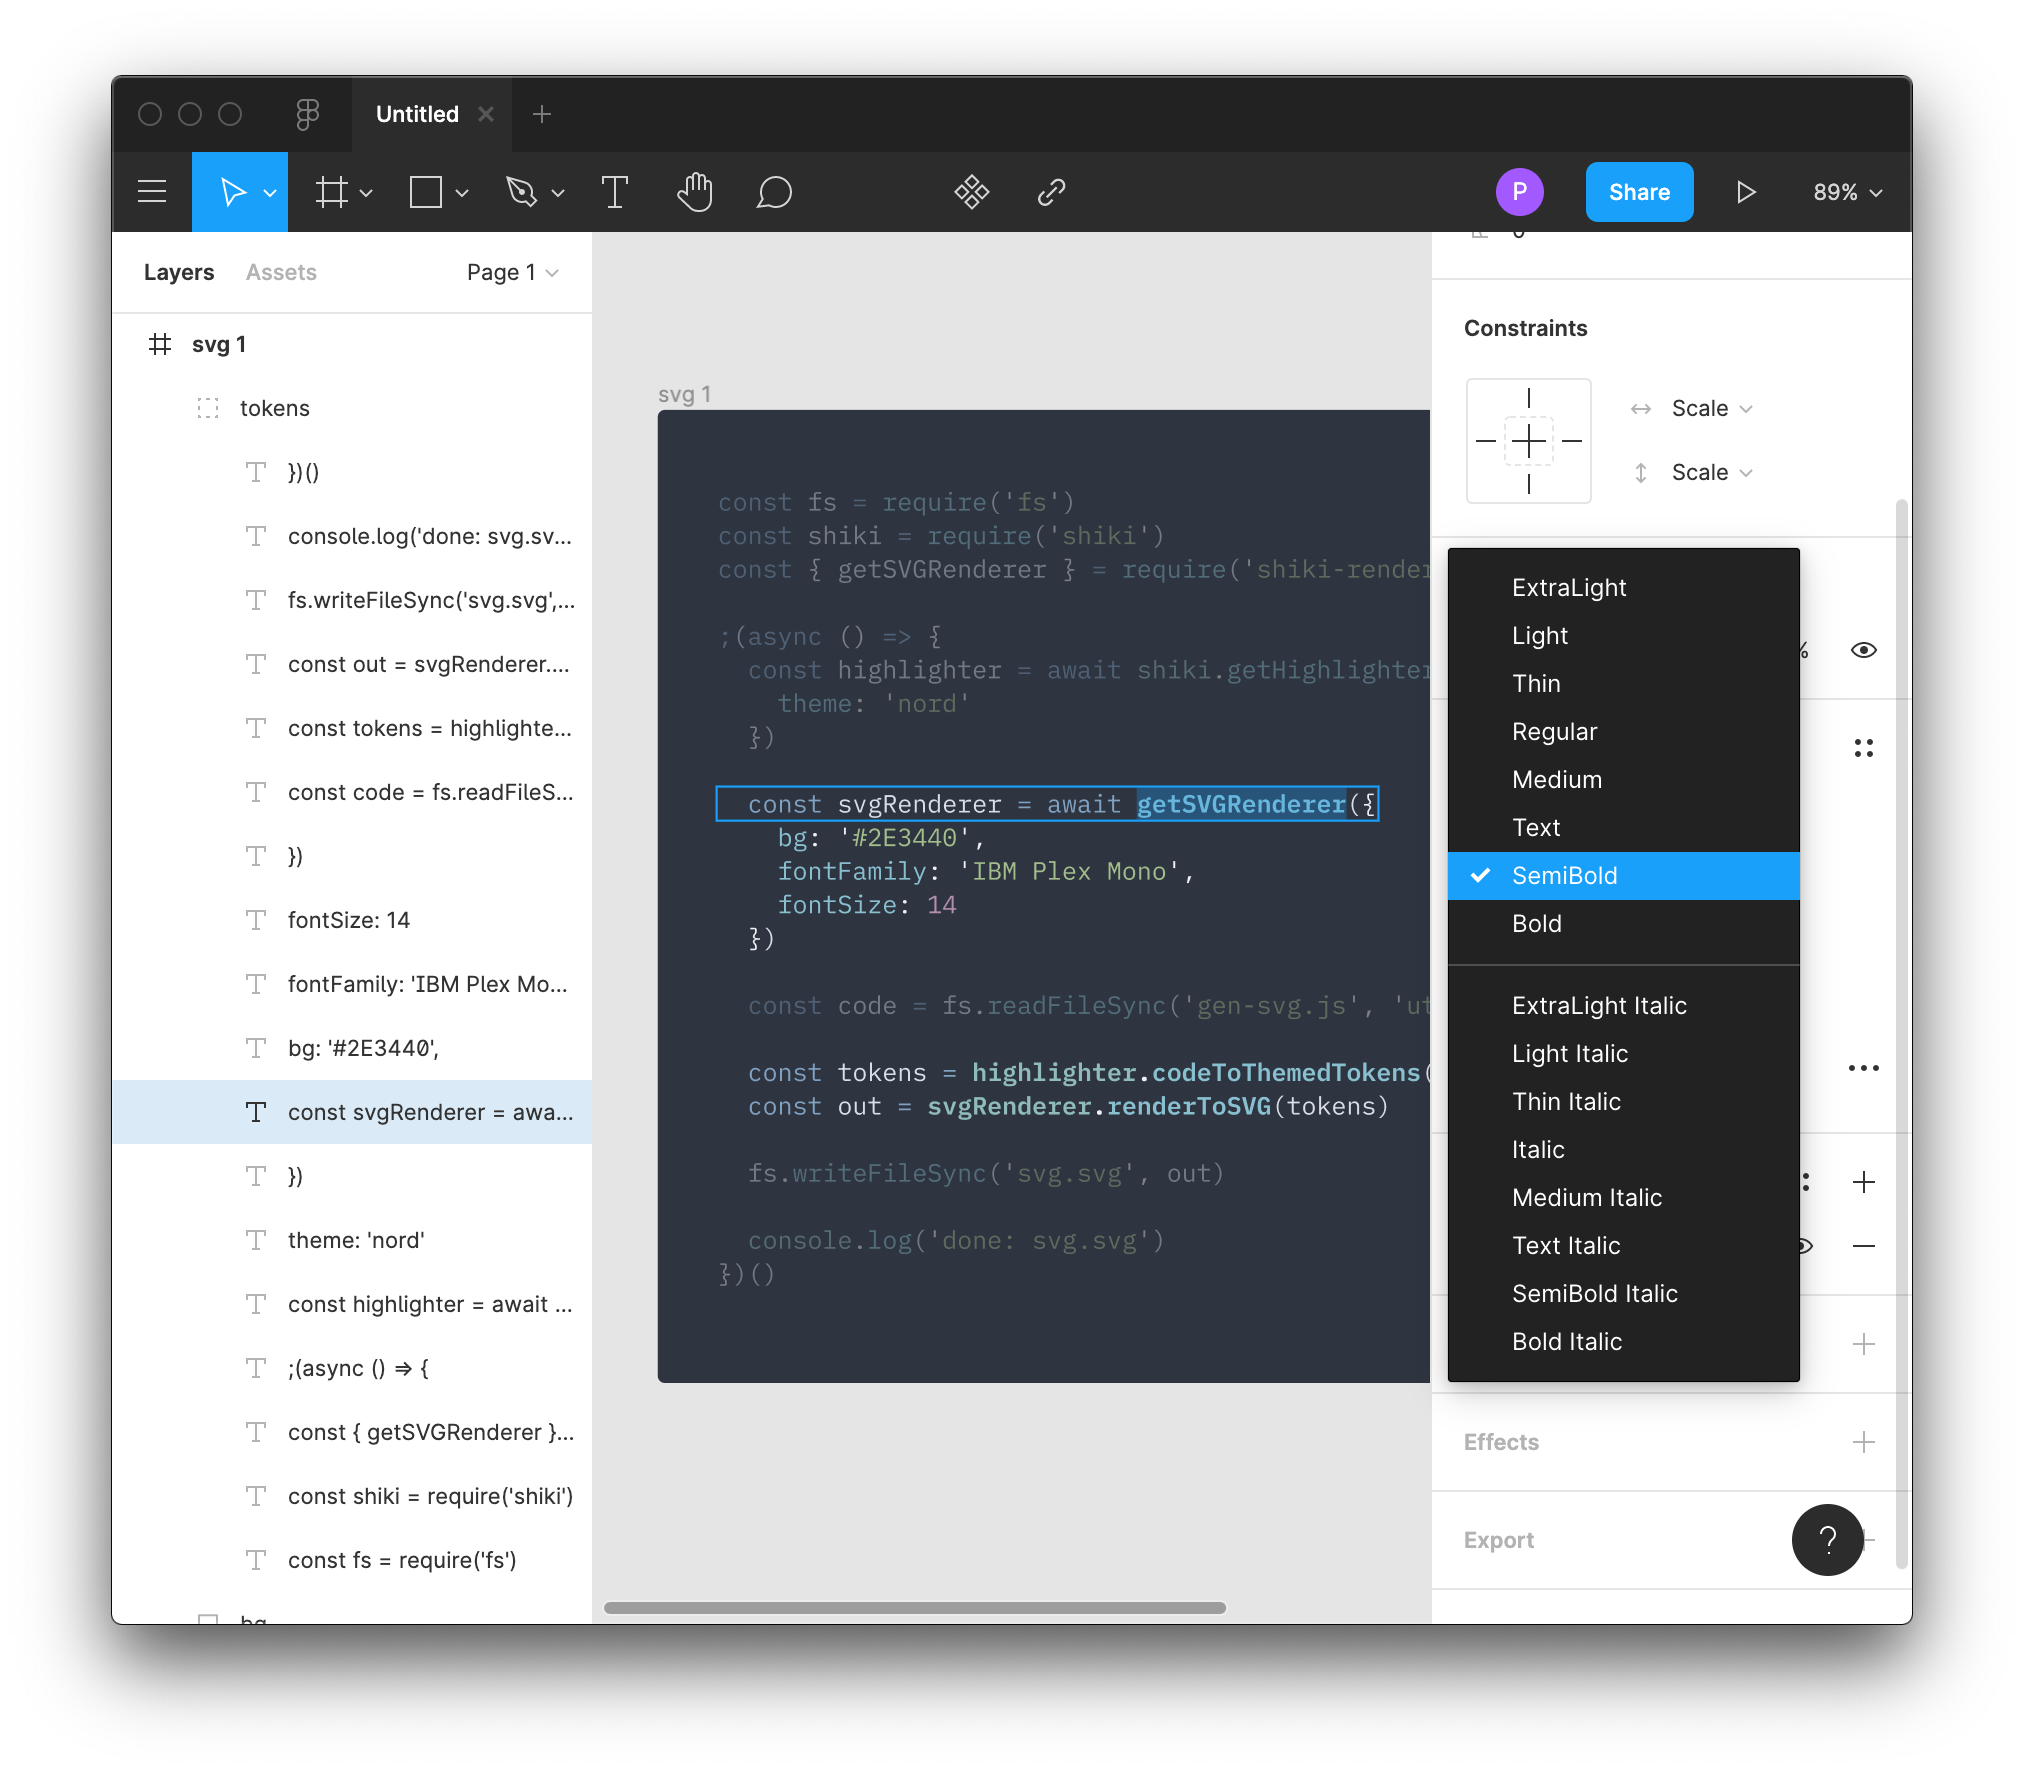 Editing In Figma